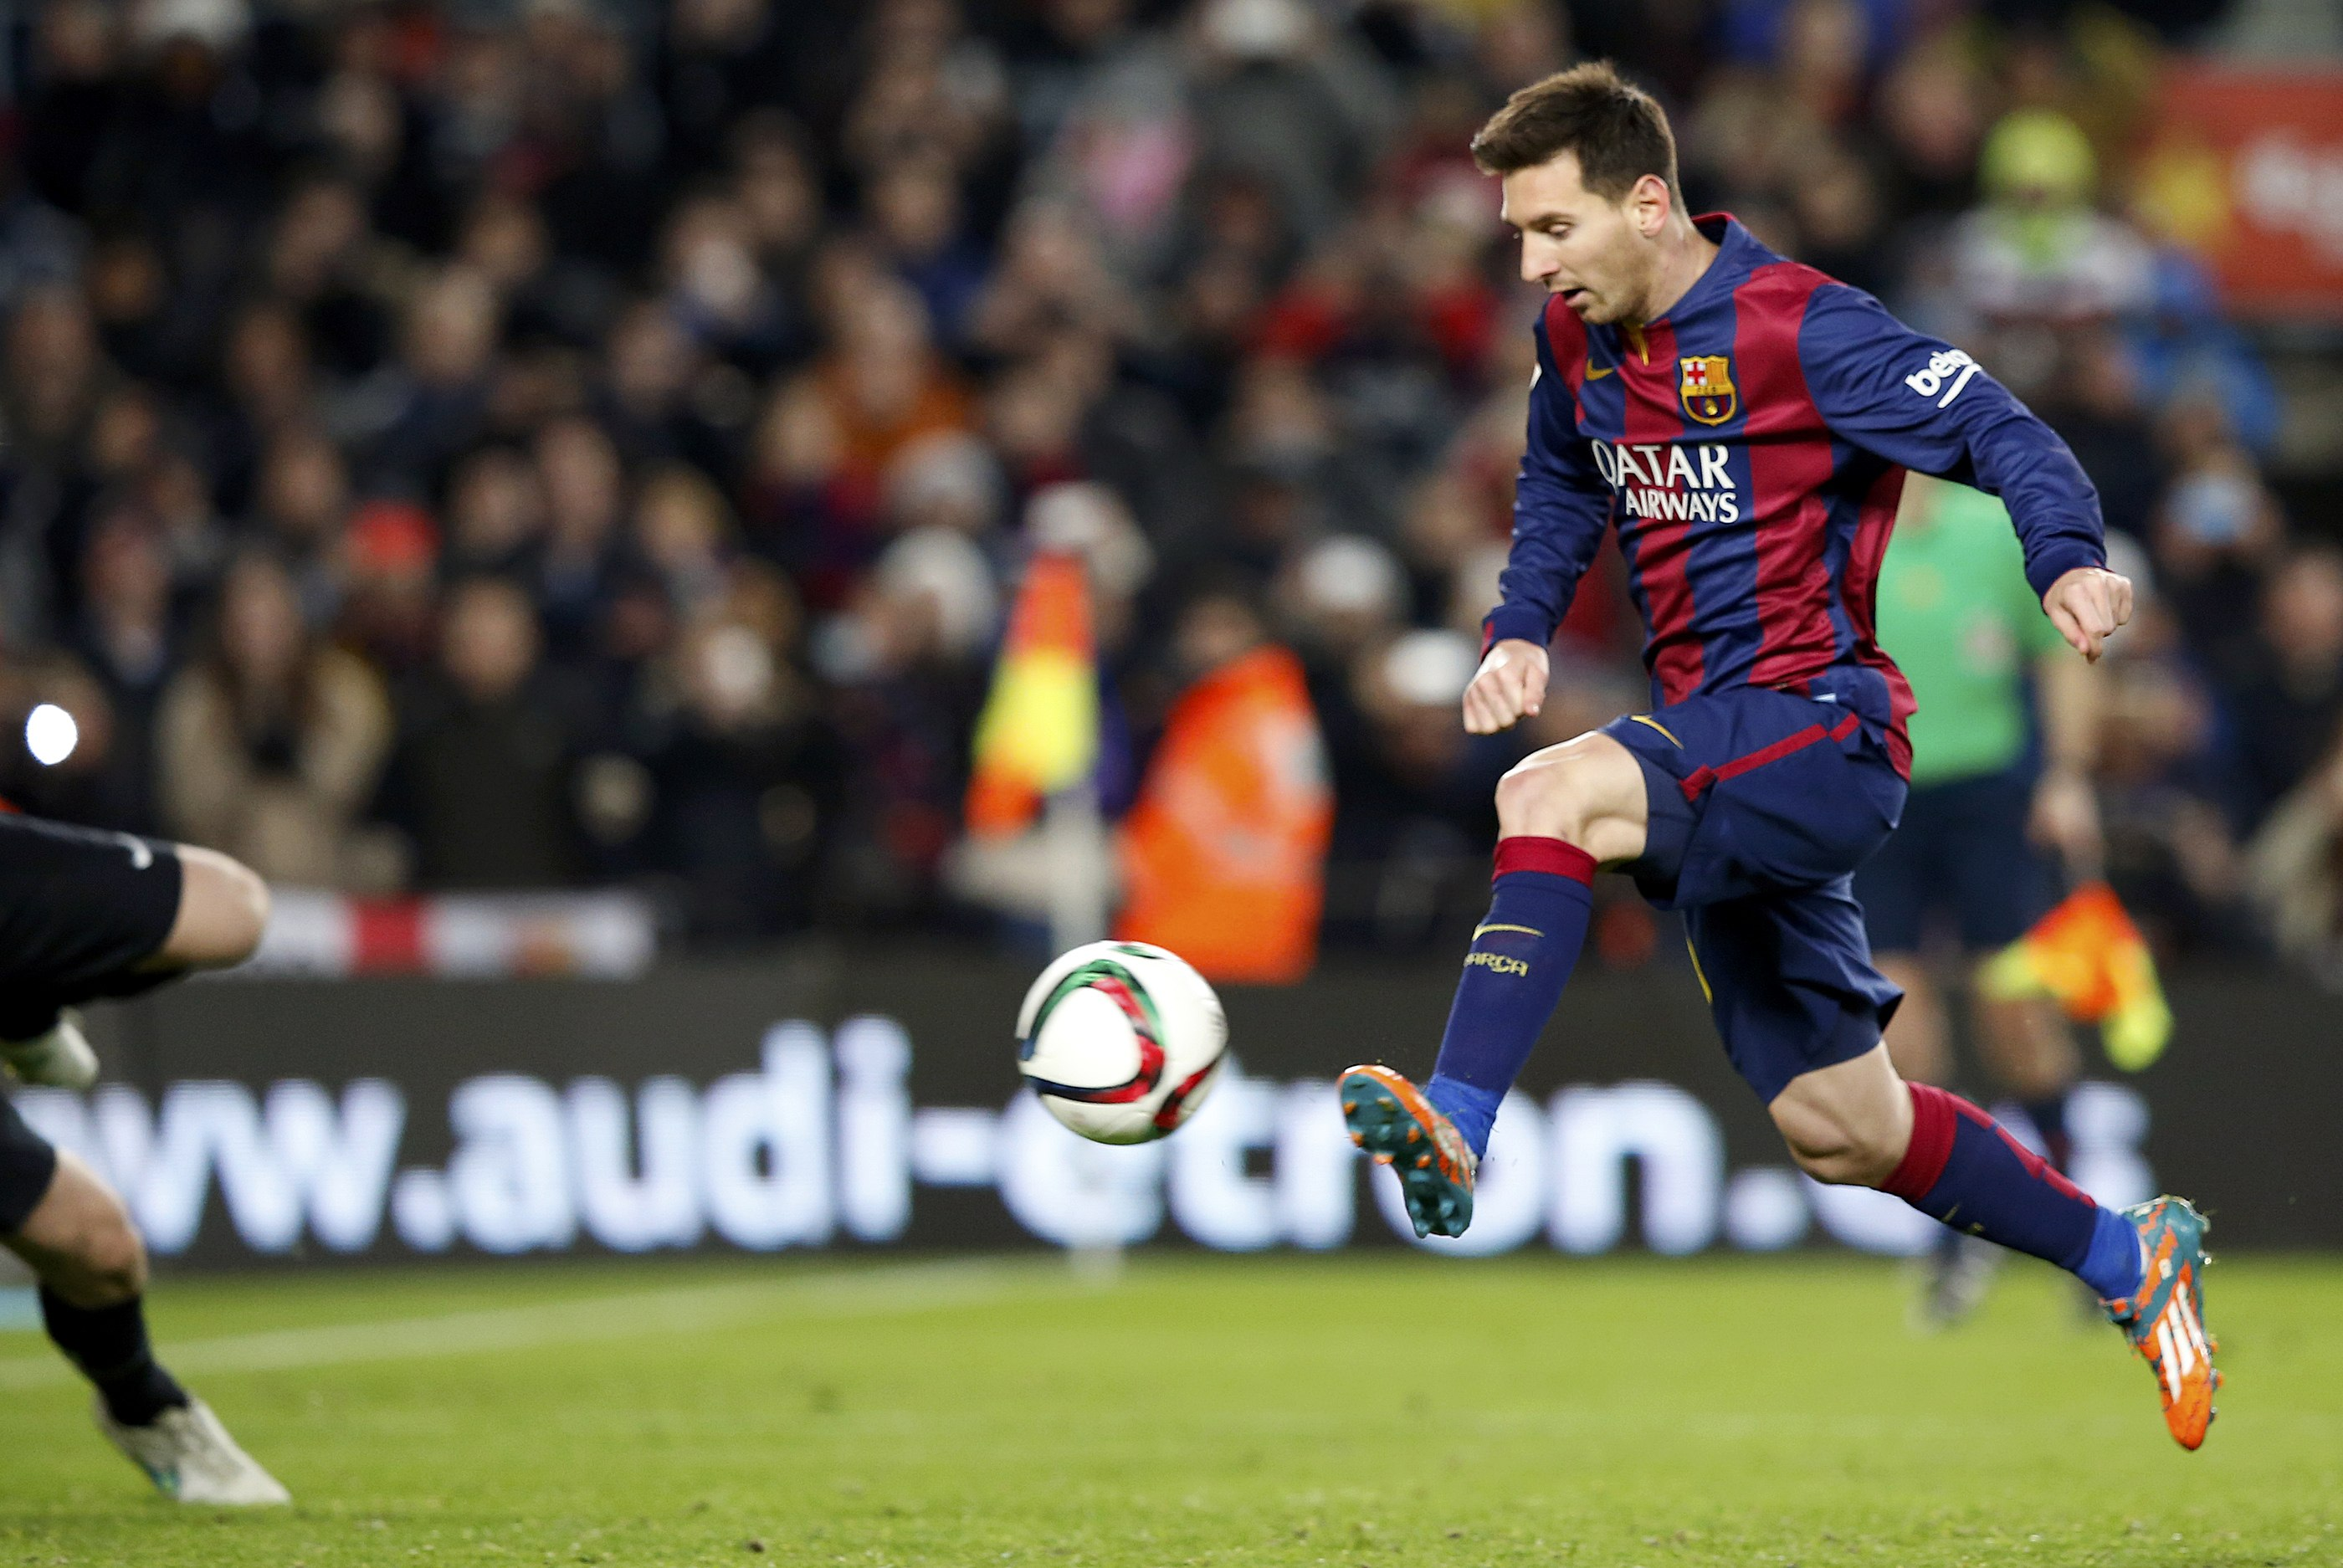 Messi strikes to give Barca edge over Atletico